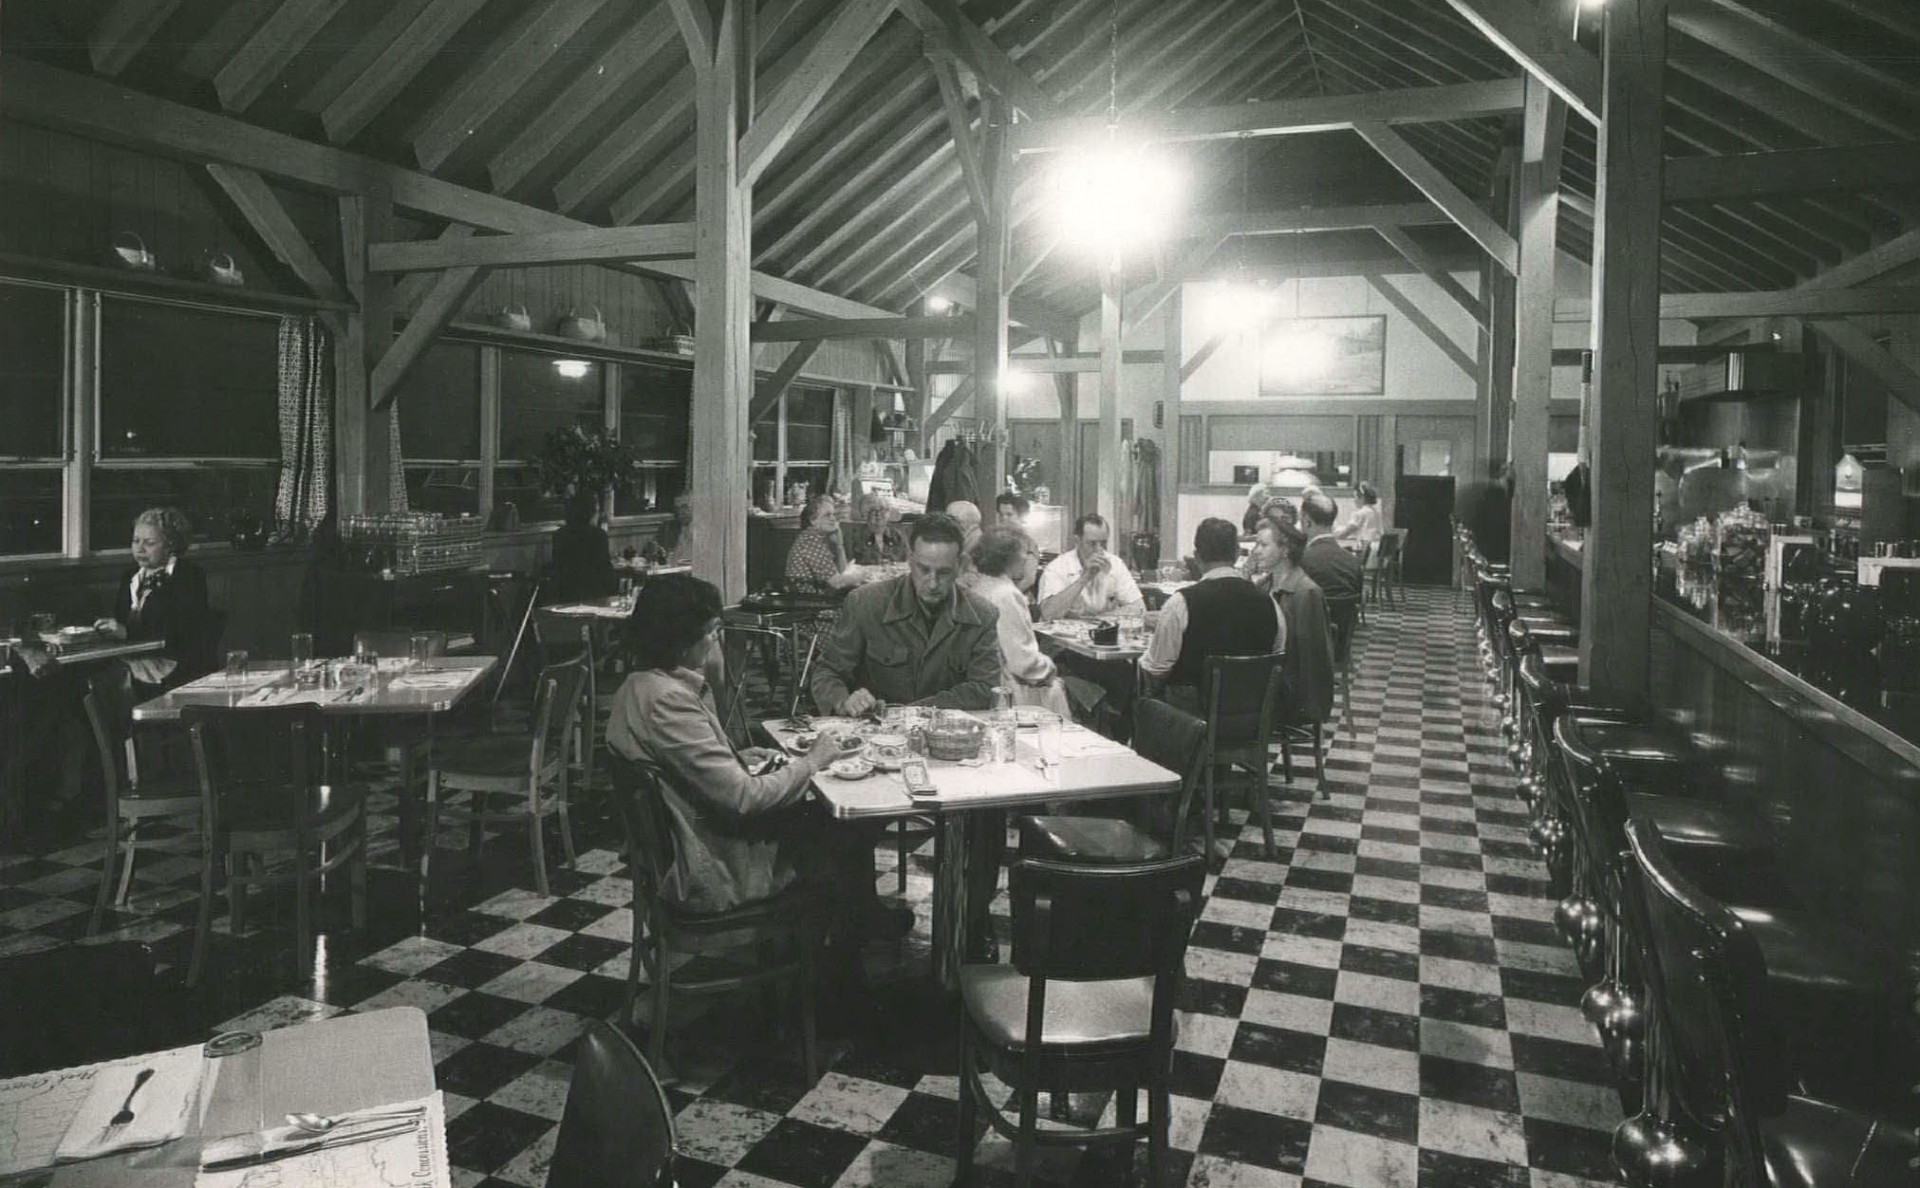 Customers at The Bluffs Restaurant in 1952.